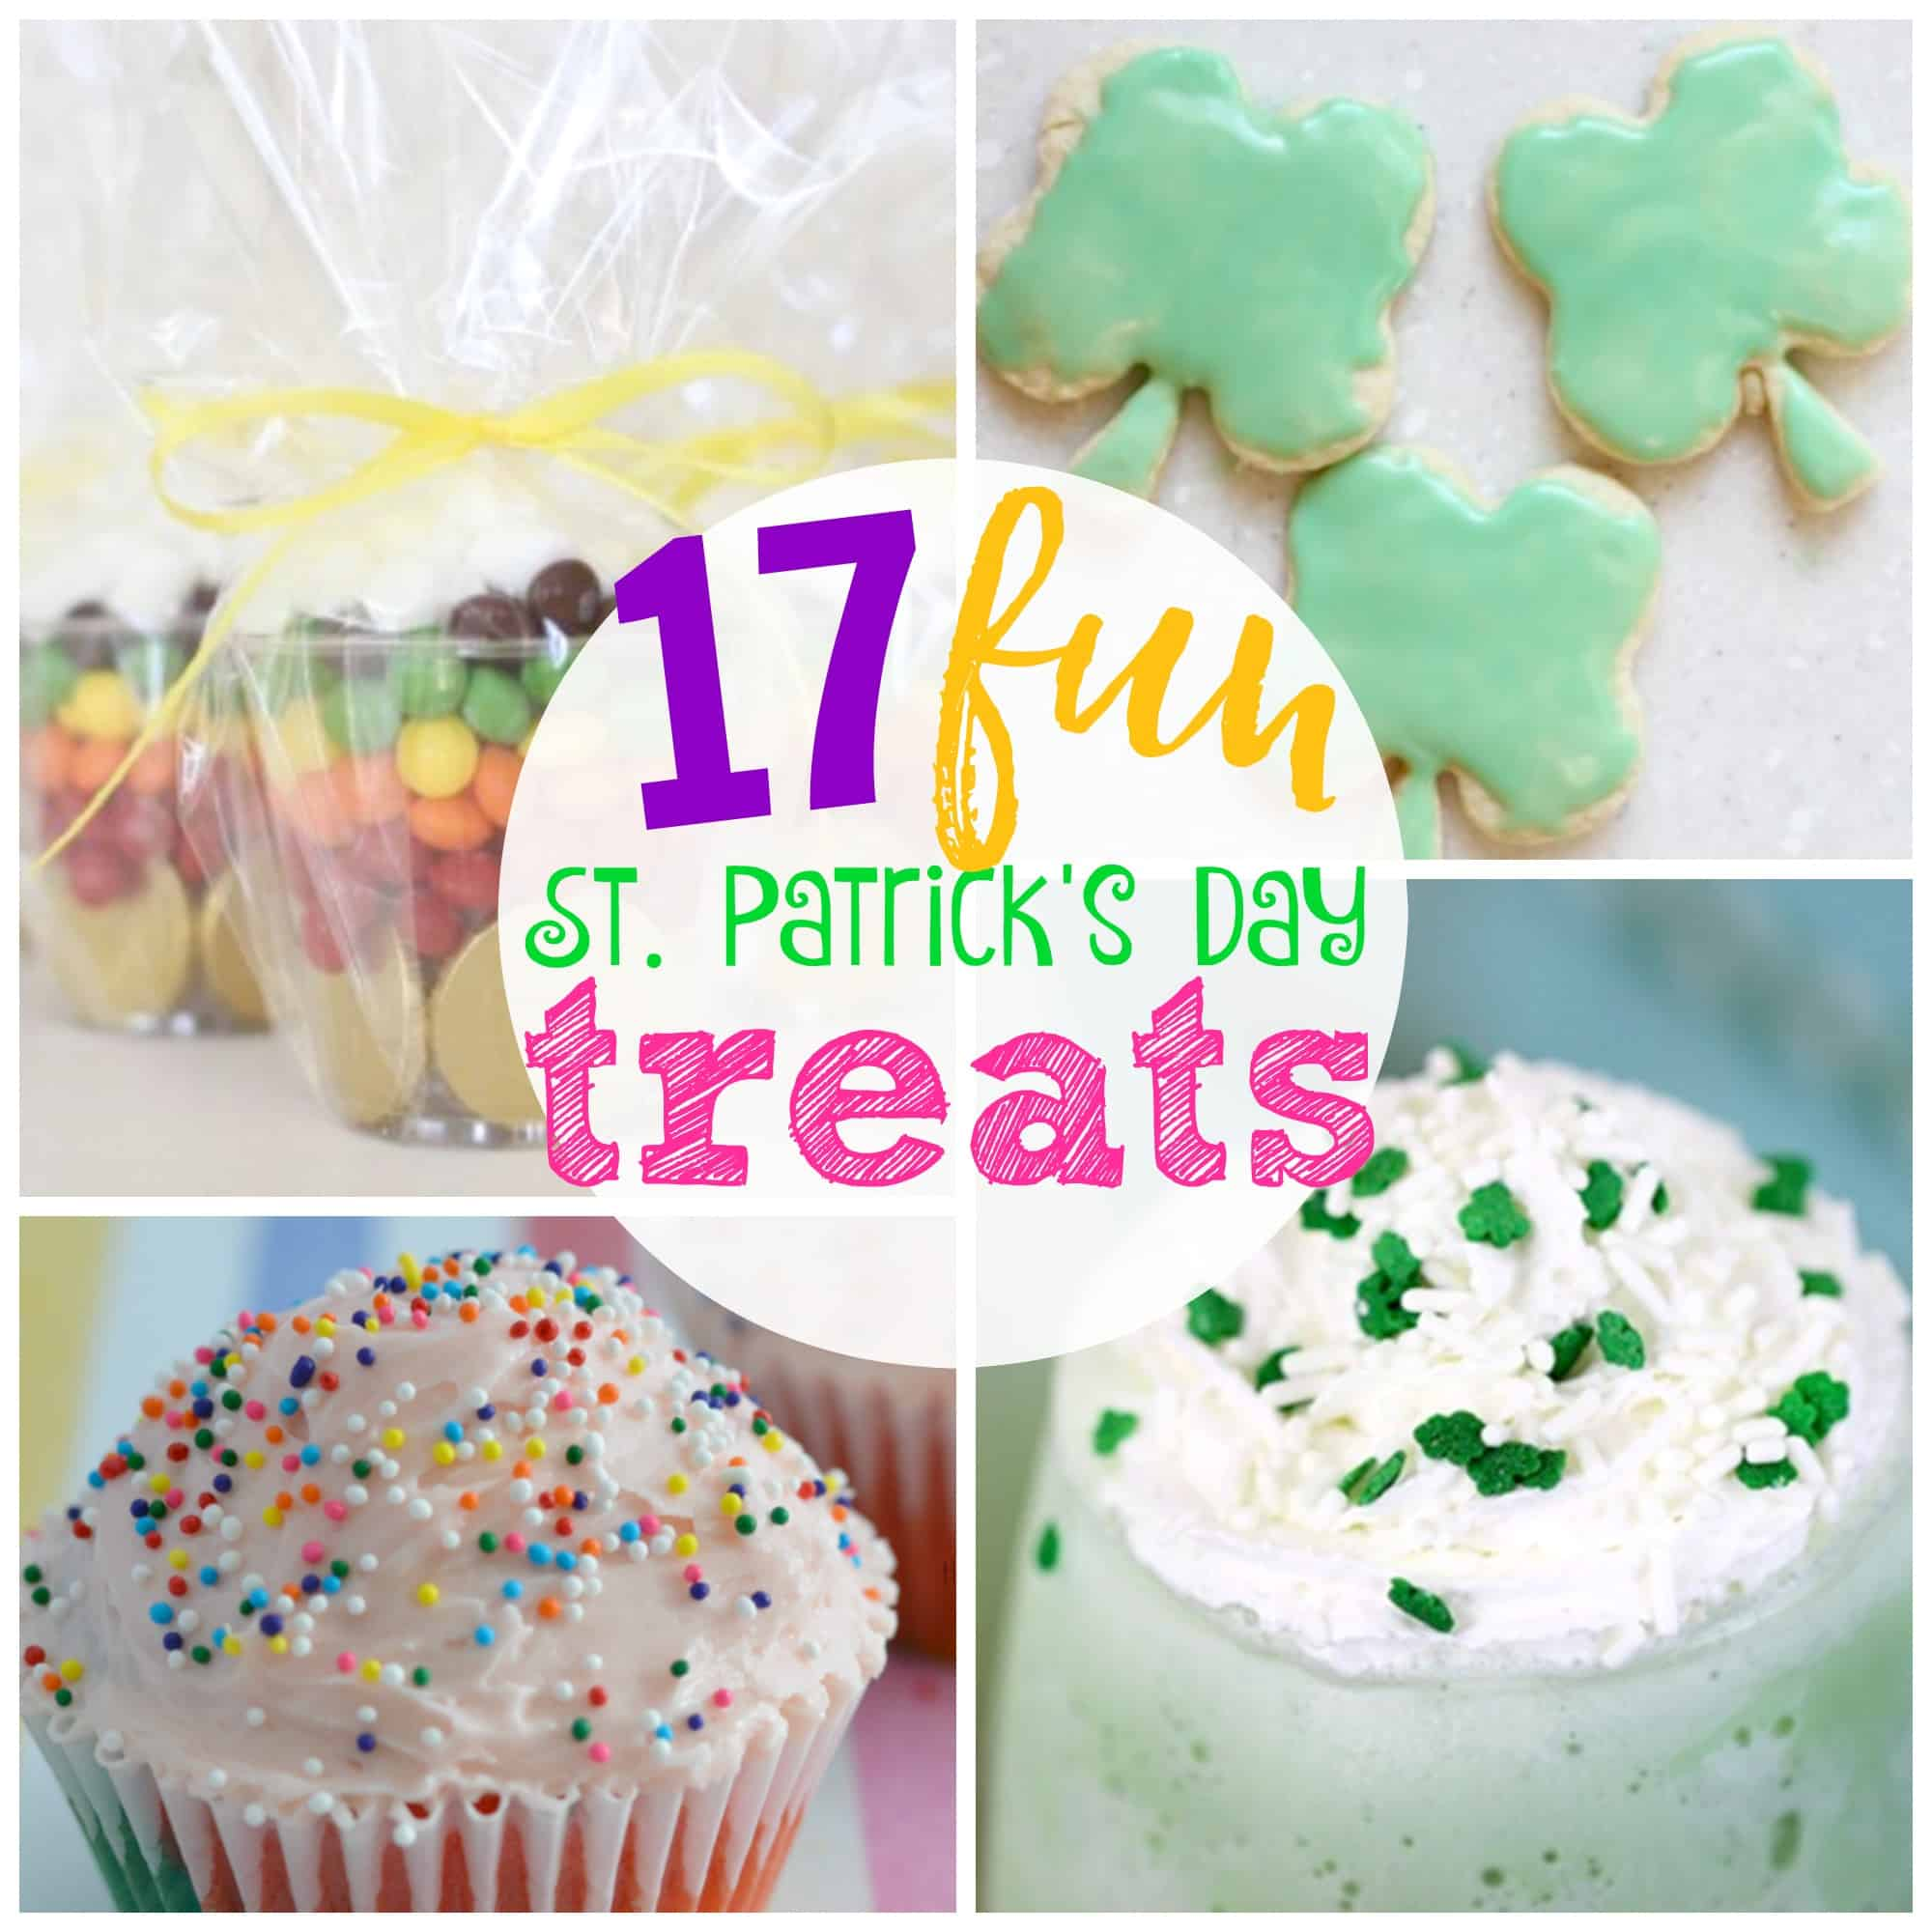 St Patrick's Day treats for kids